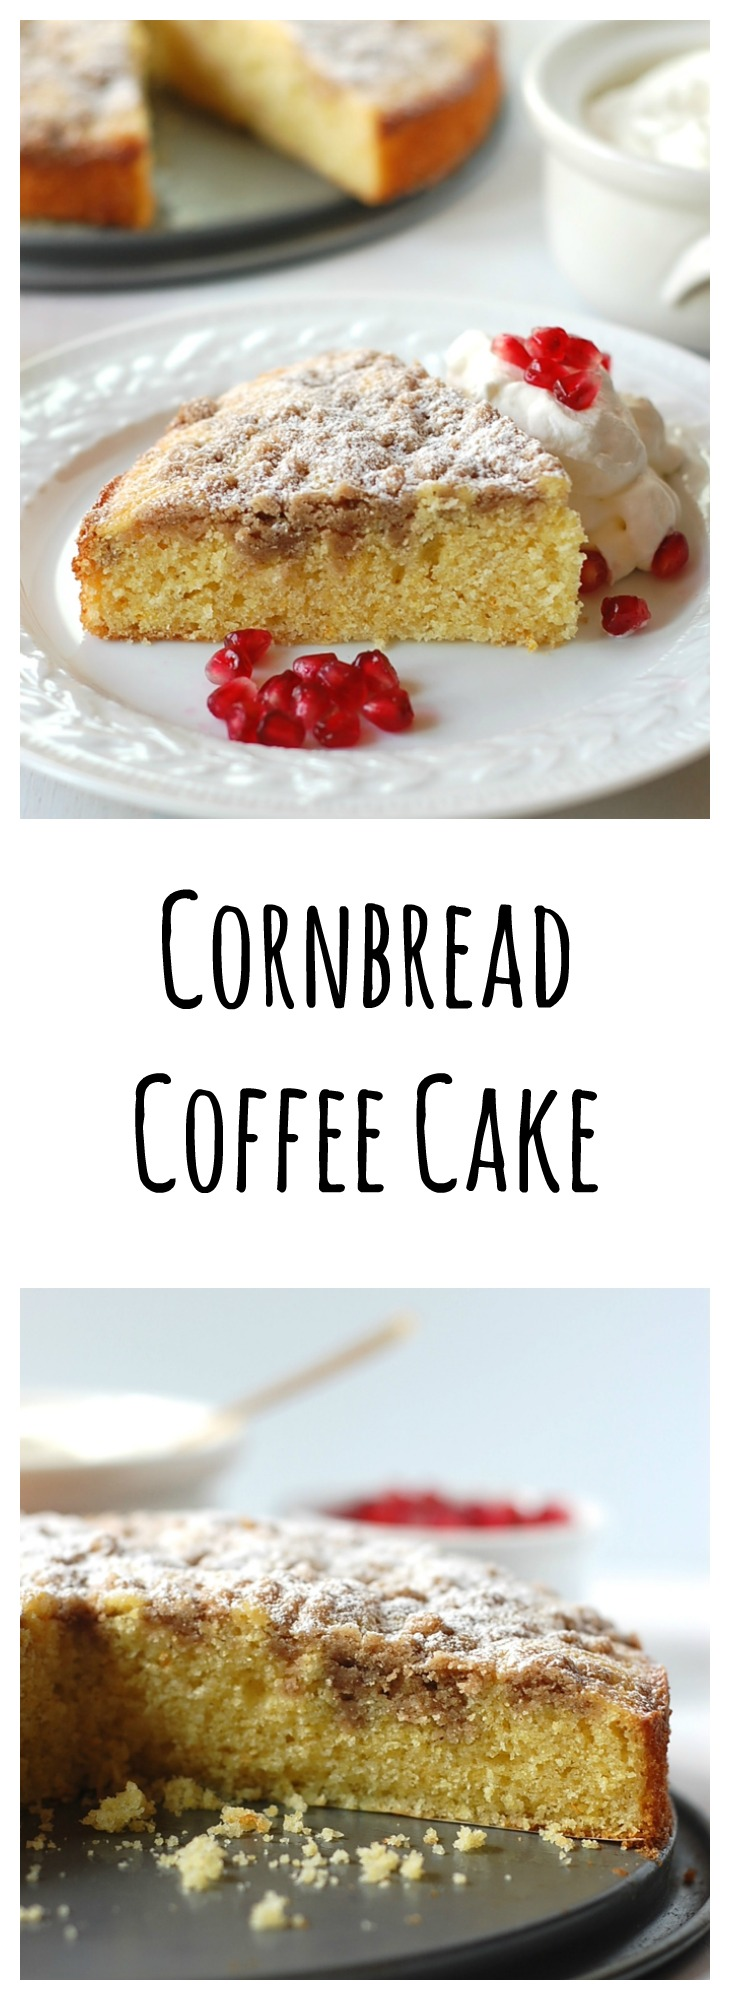 Cornbread Coffee Cake--make ahead for breakfast or brunch!